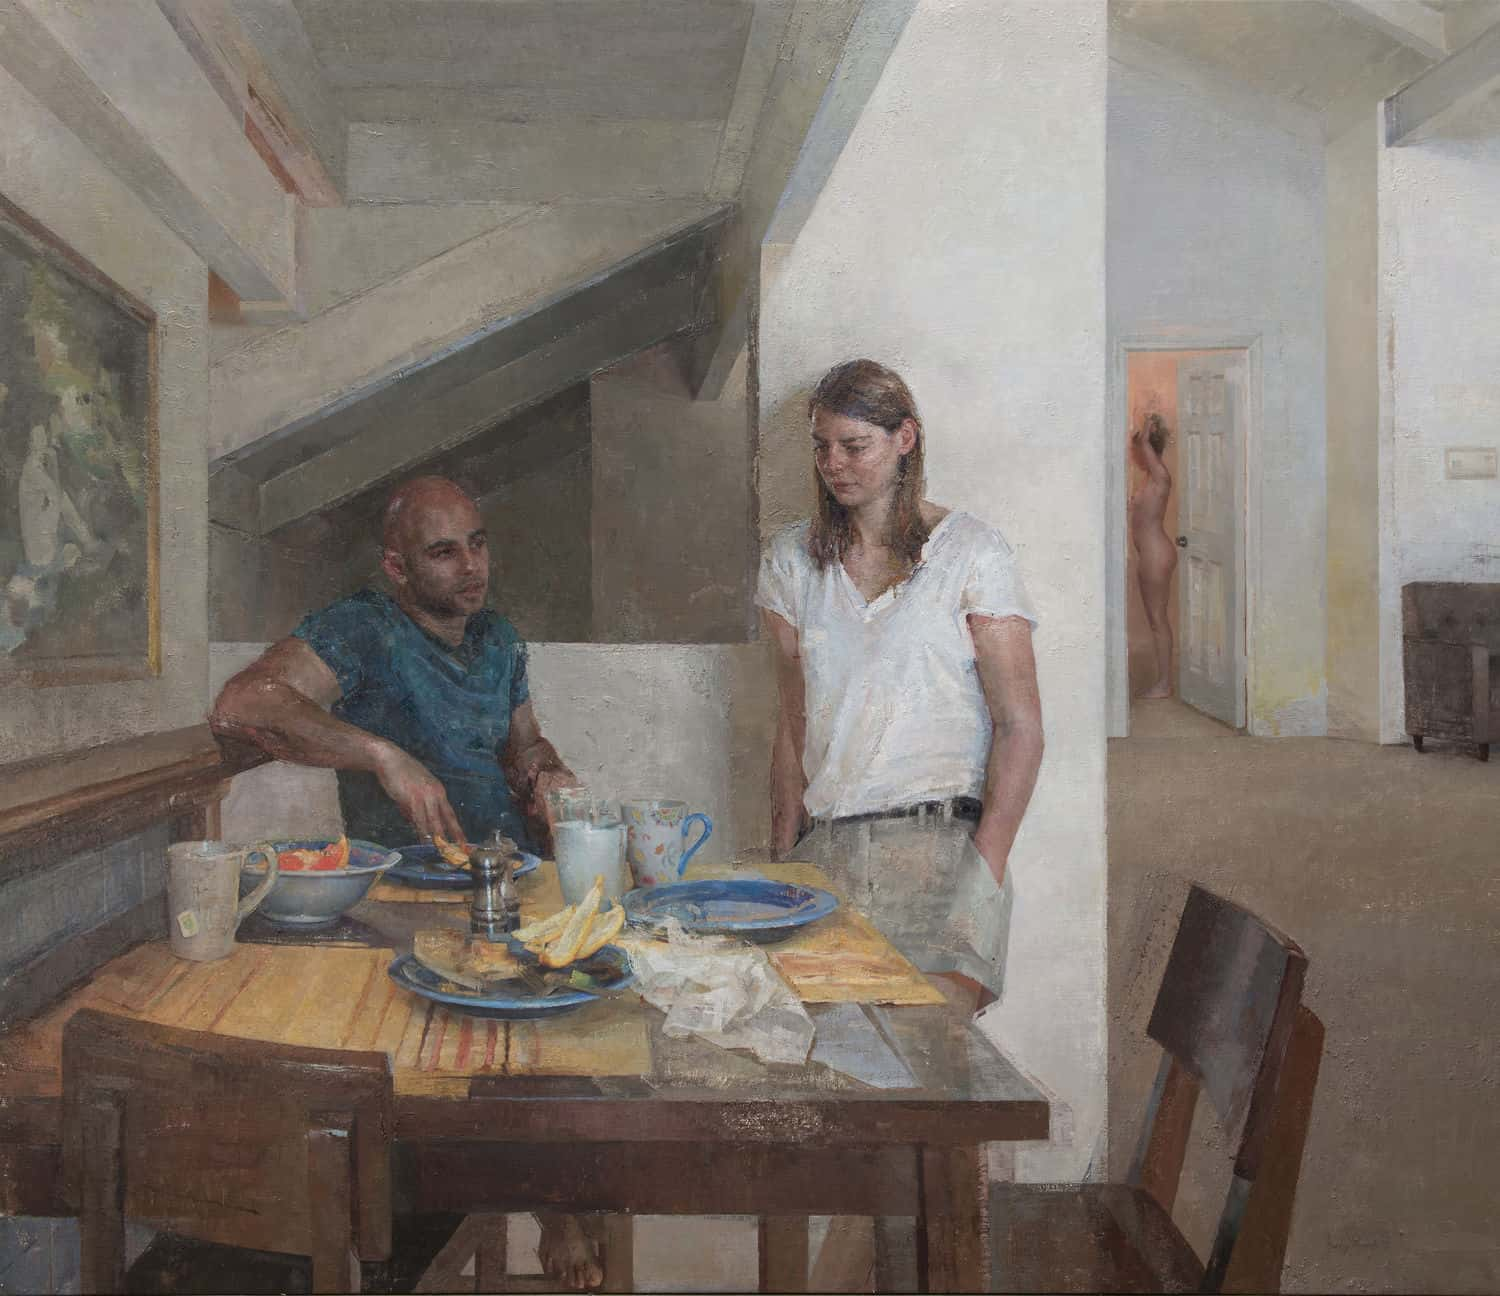 Zoey Frank and Paintings of the Mundane Little Things